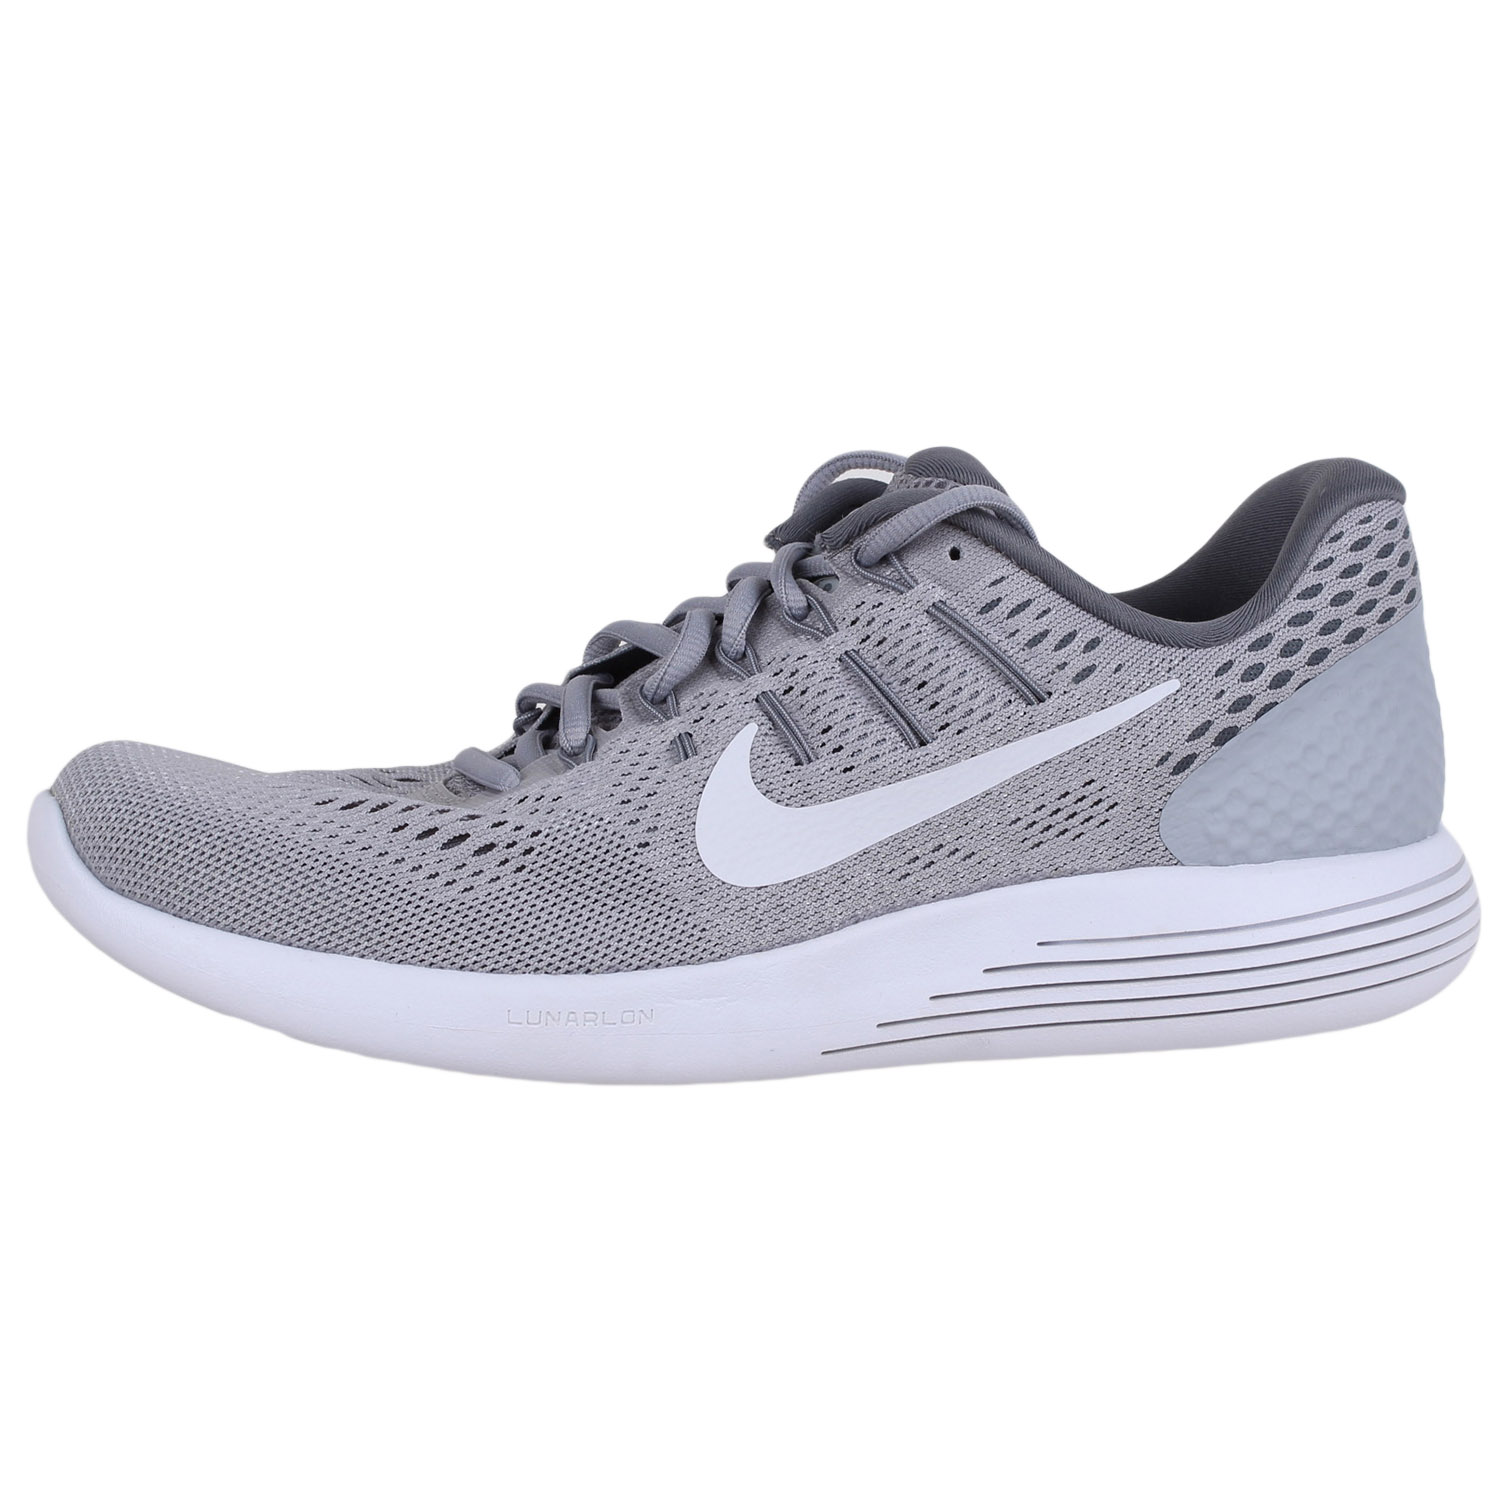 54512b05af46c Details about Nike Women s Lunarglide 8 Running Shoes 843726 Wolf  Grey White Cool grey sz.10